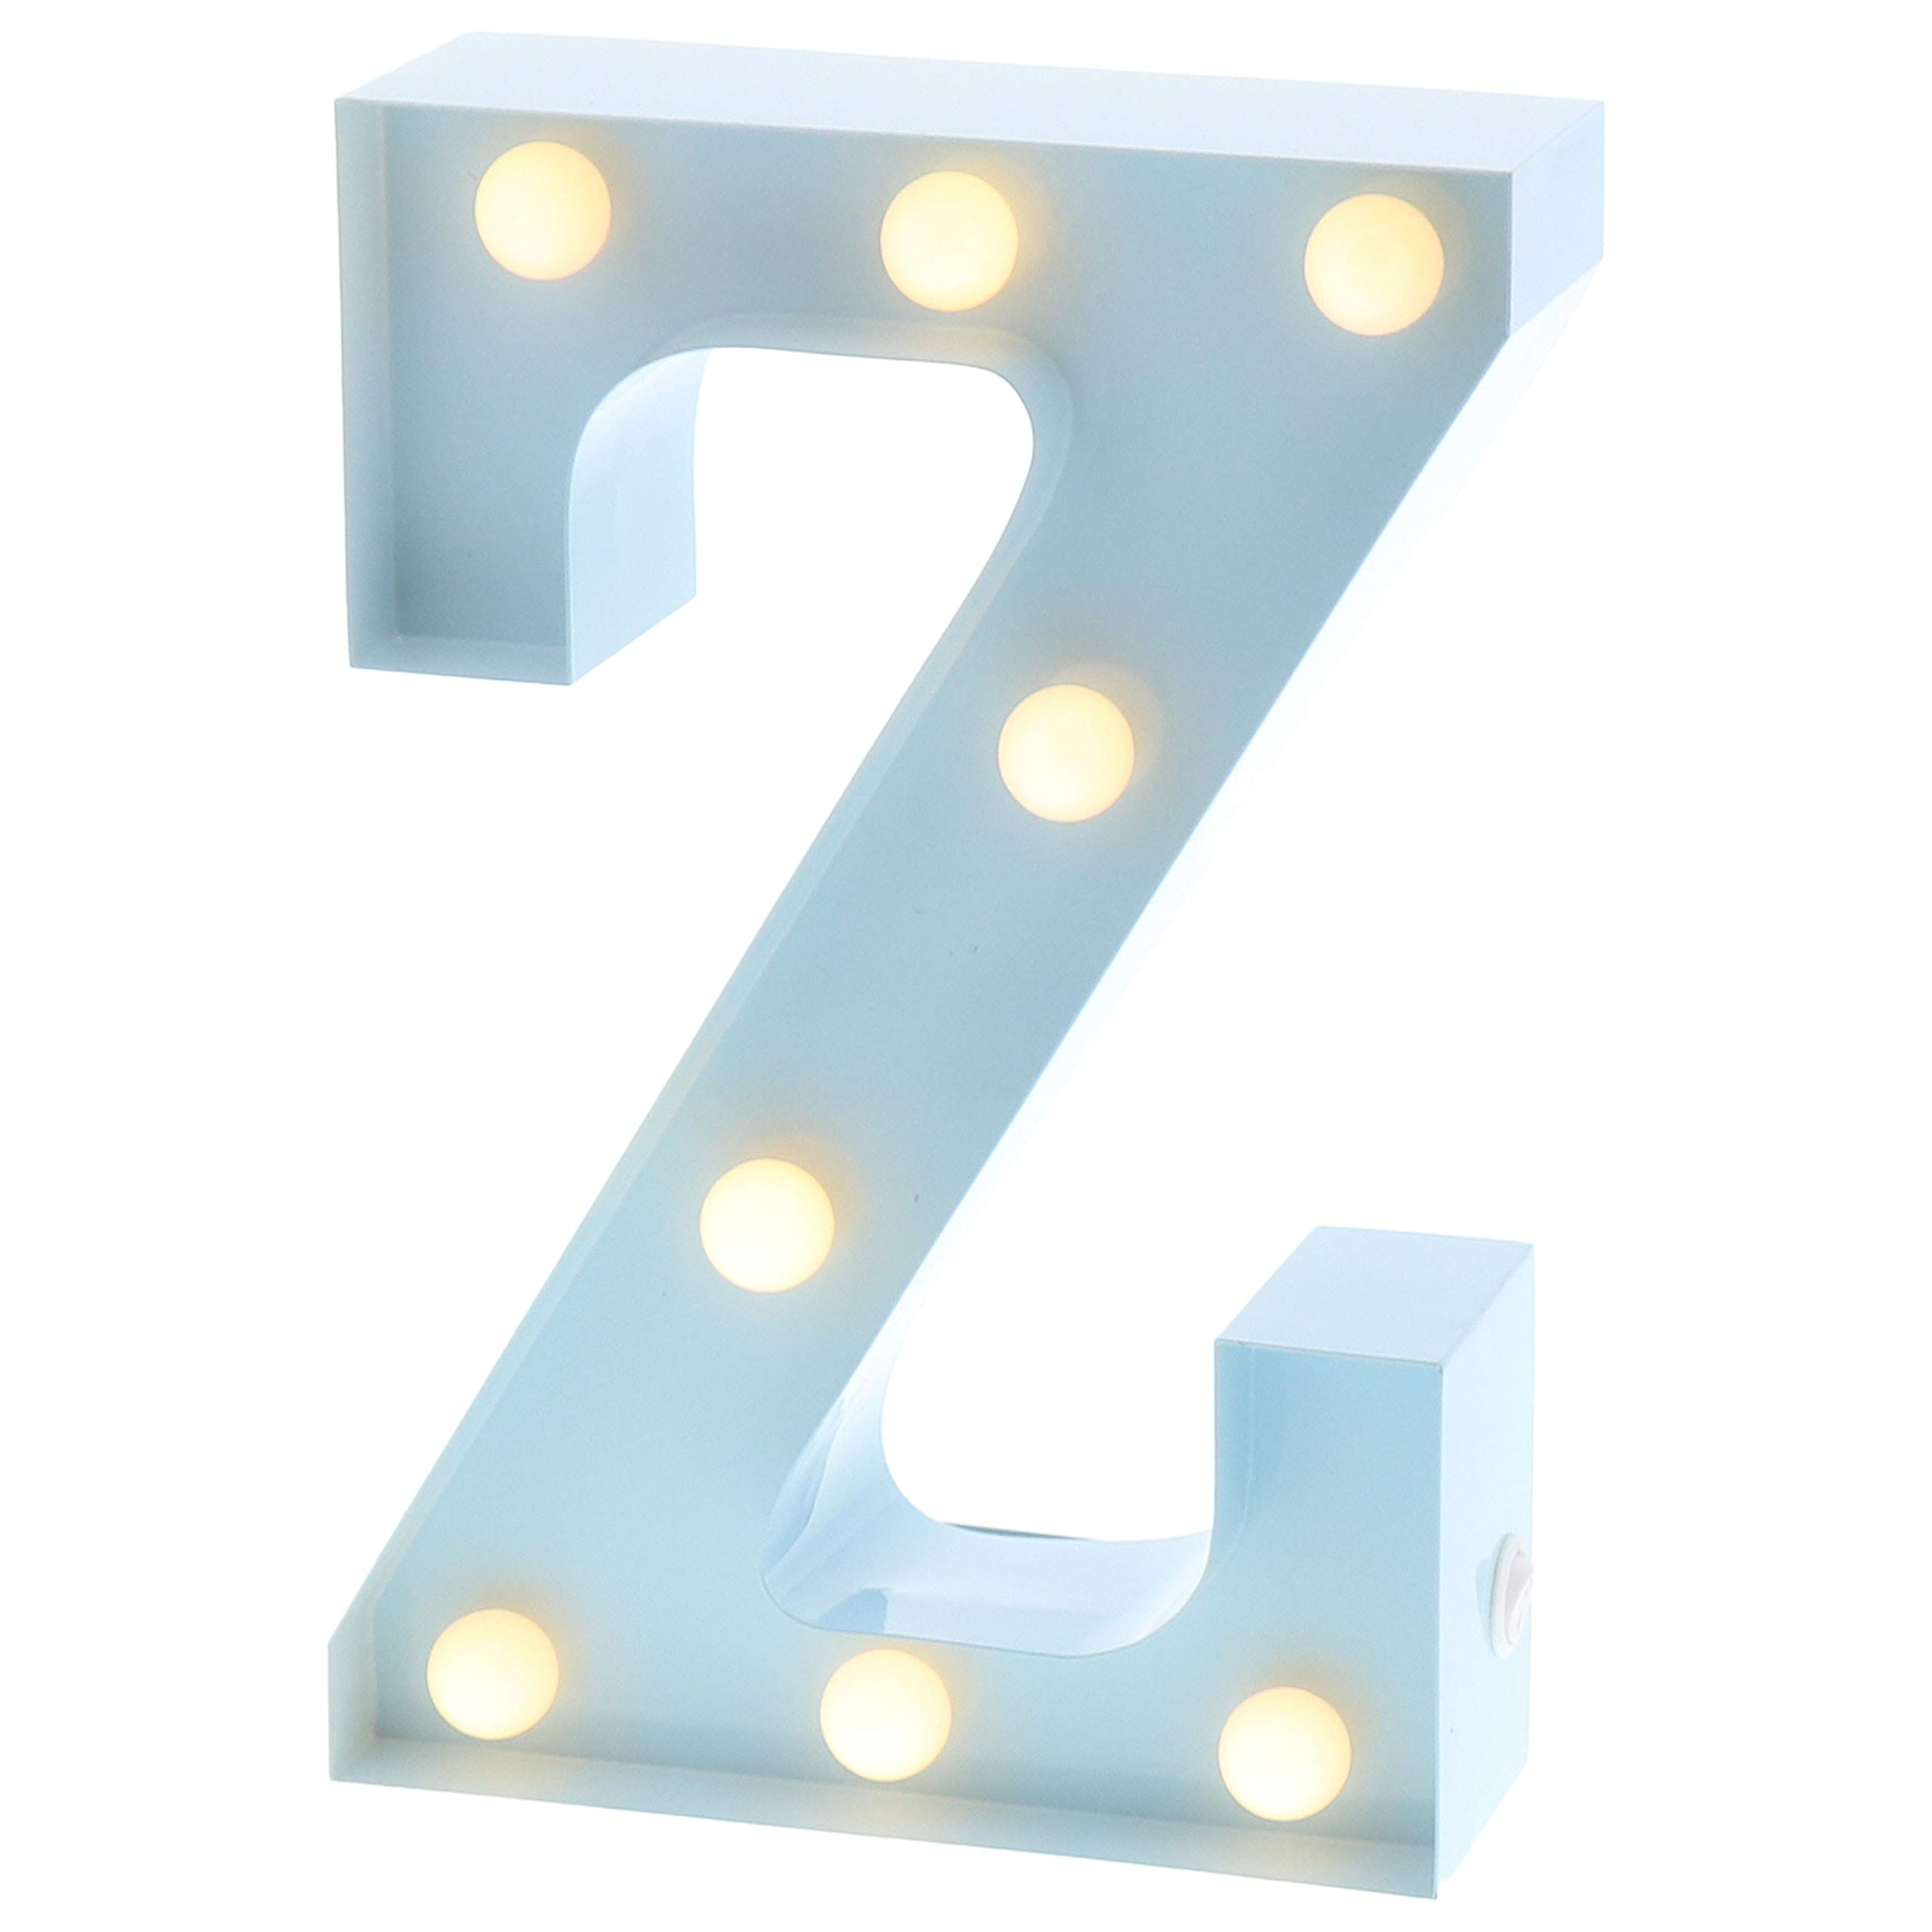 """Barnyard Designs Metal Marquee Letter Z Light Up Wall Initial Nursery Letter, Home and Event Decoration 9"""" (Baby Blue)"""